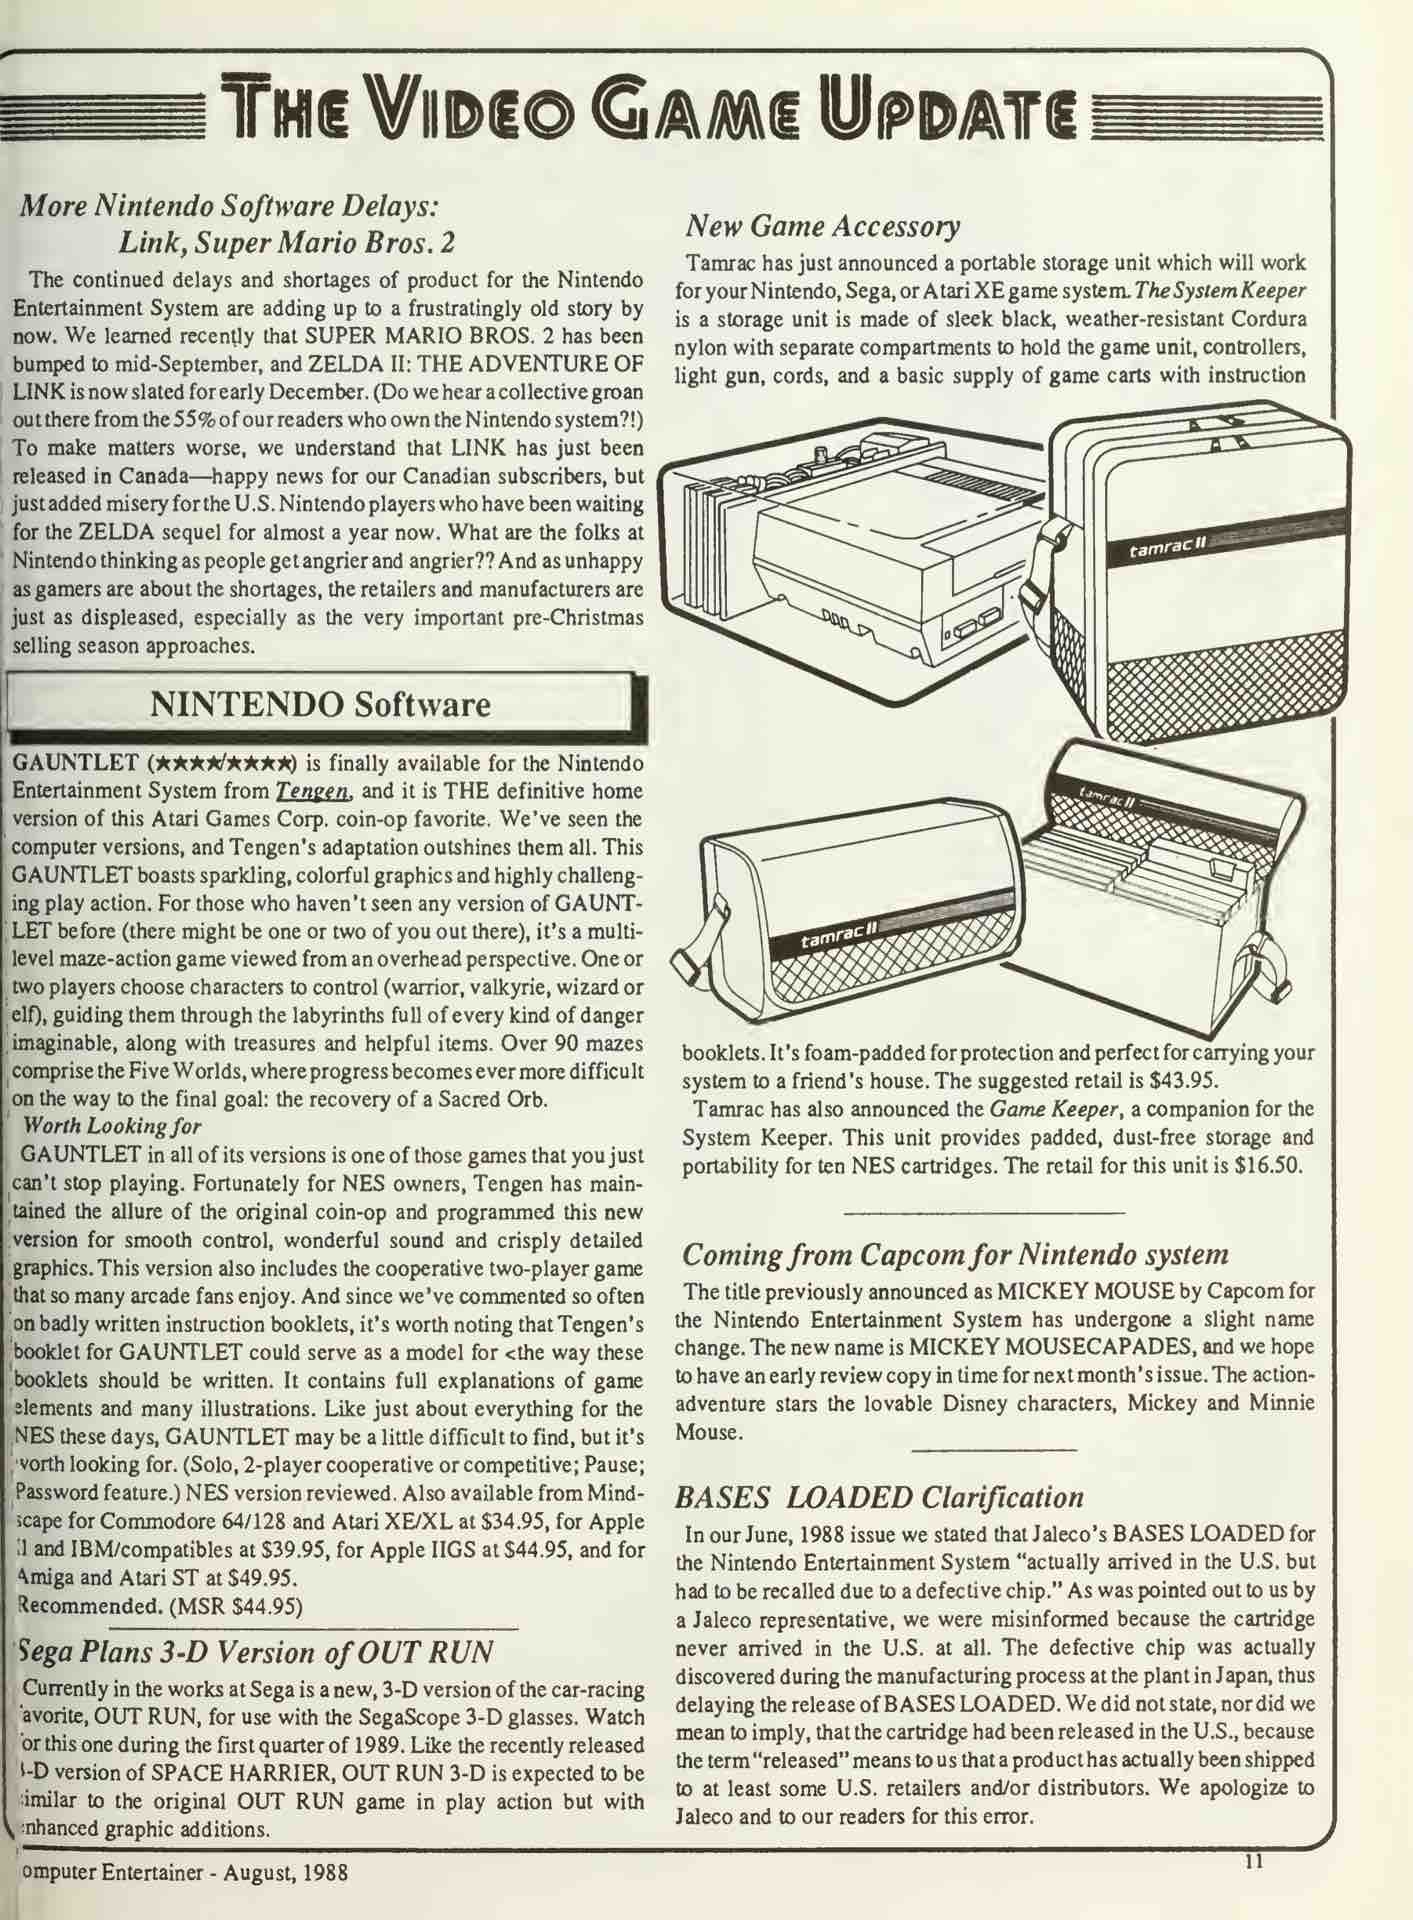 Computer Entertainer | August 1988 - pg 11